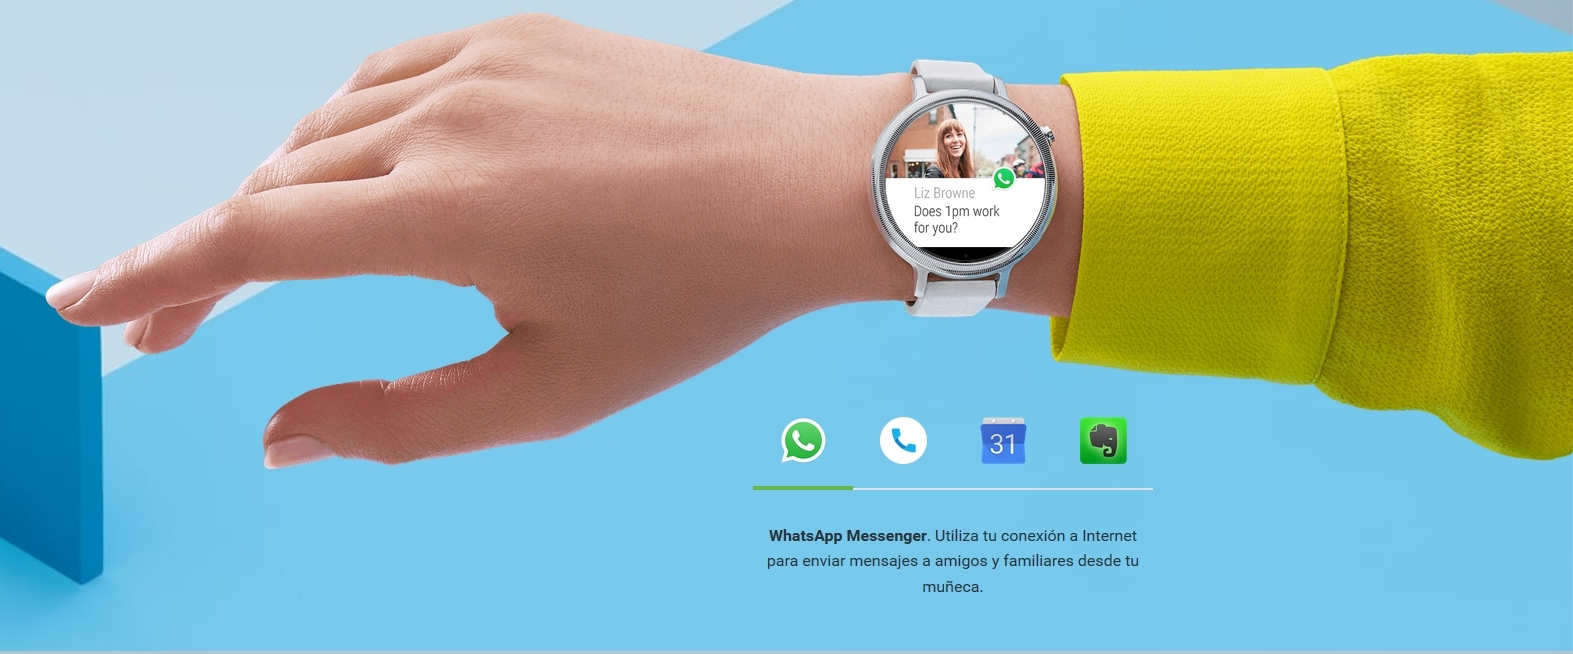 Android Wear pros